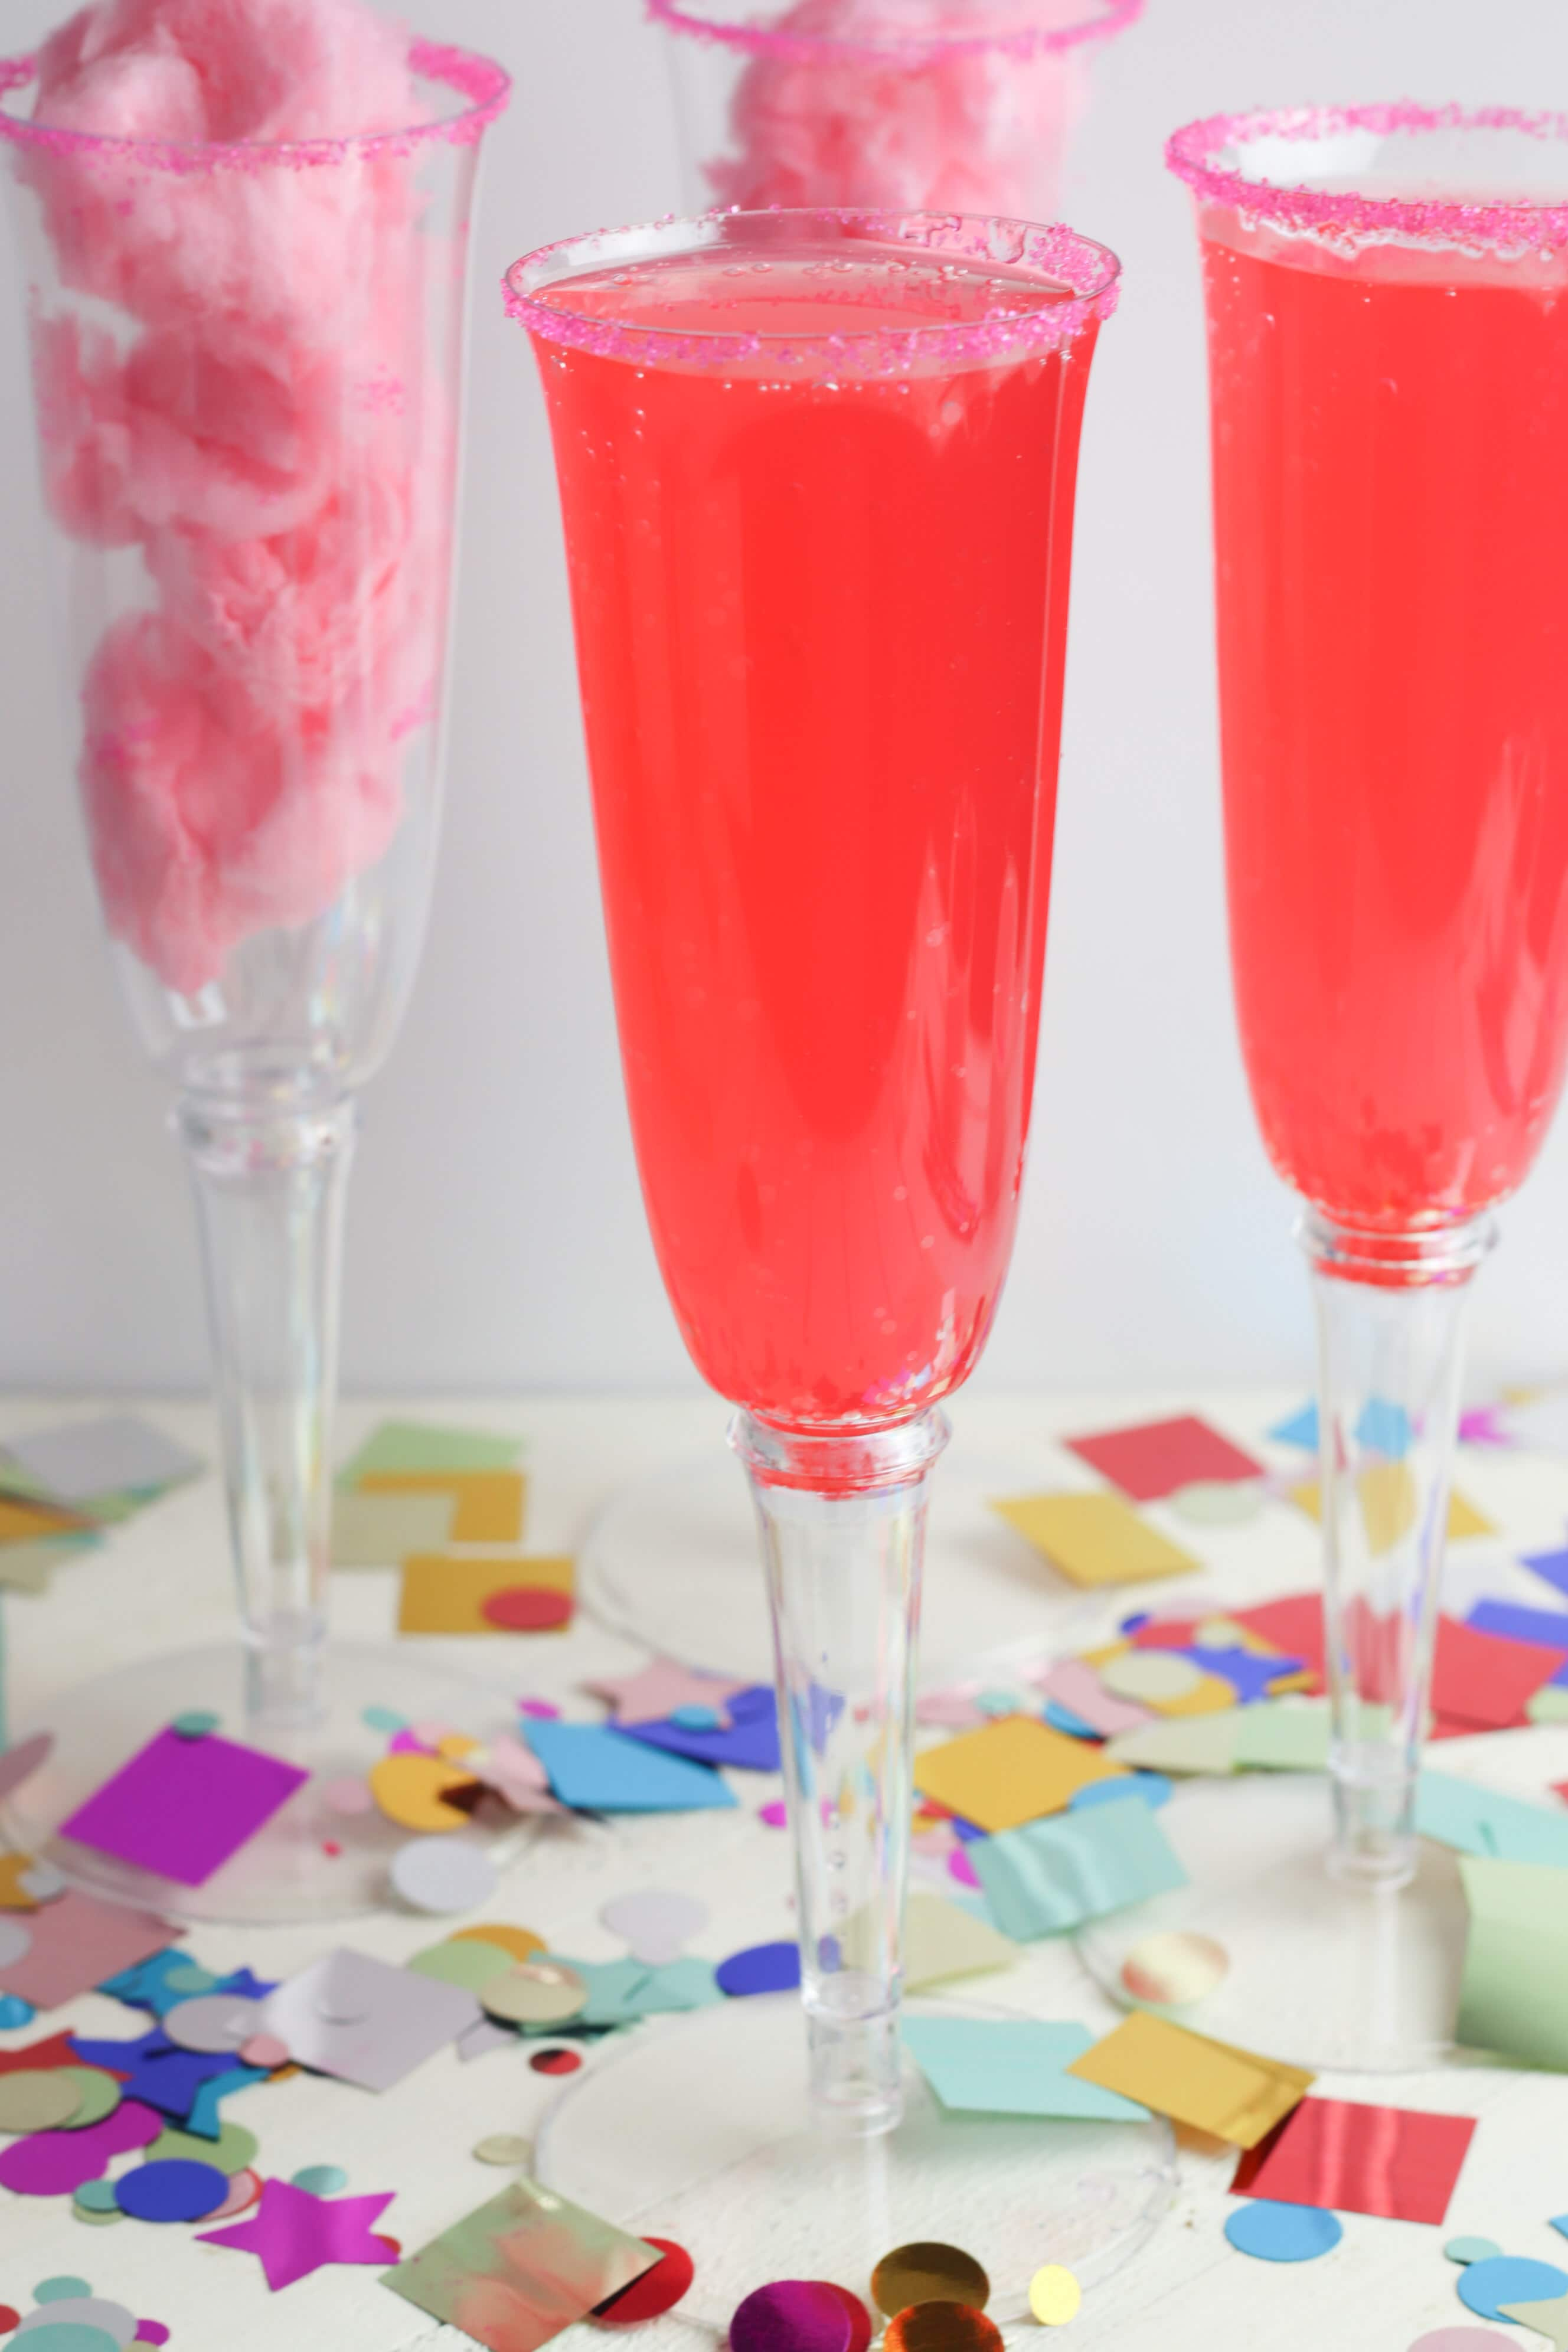 This fun and sweet non alcoholic tasty cotton candy mocktail has a very beautiful and festive pink color! This is a super fun drink to make for kids or non drinkers at a party! The recipe calls for cotton candy, pink sugar and strawberry soda which makes for a pretty sparking pink drink. This is a great sparkling drink recipe for a crowd! Your guests will be so impressed! #mocktail #nonalcoholicdrinks #nonalcoholic #mocktailrecipe